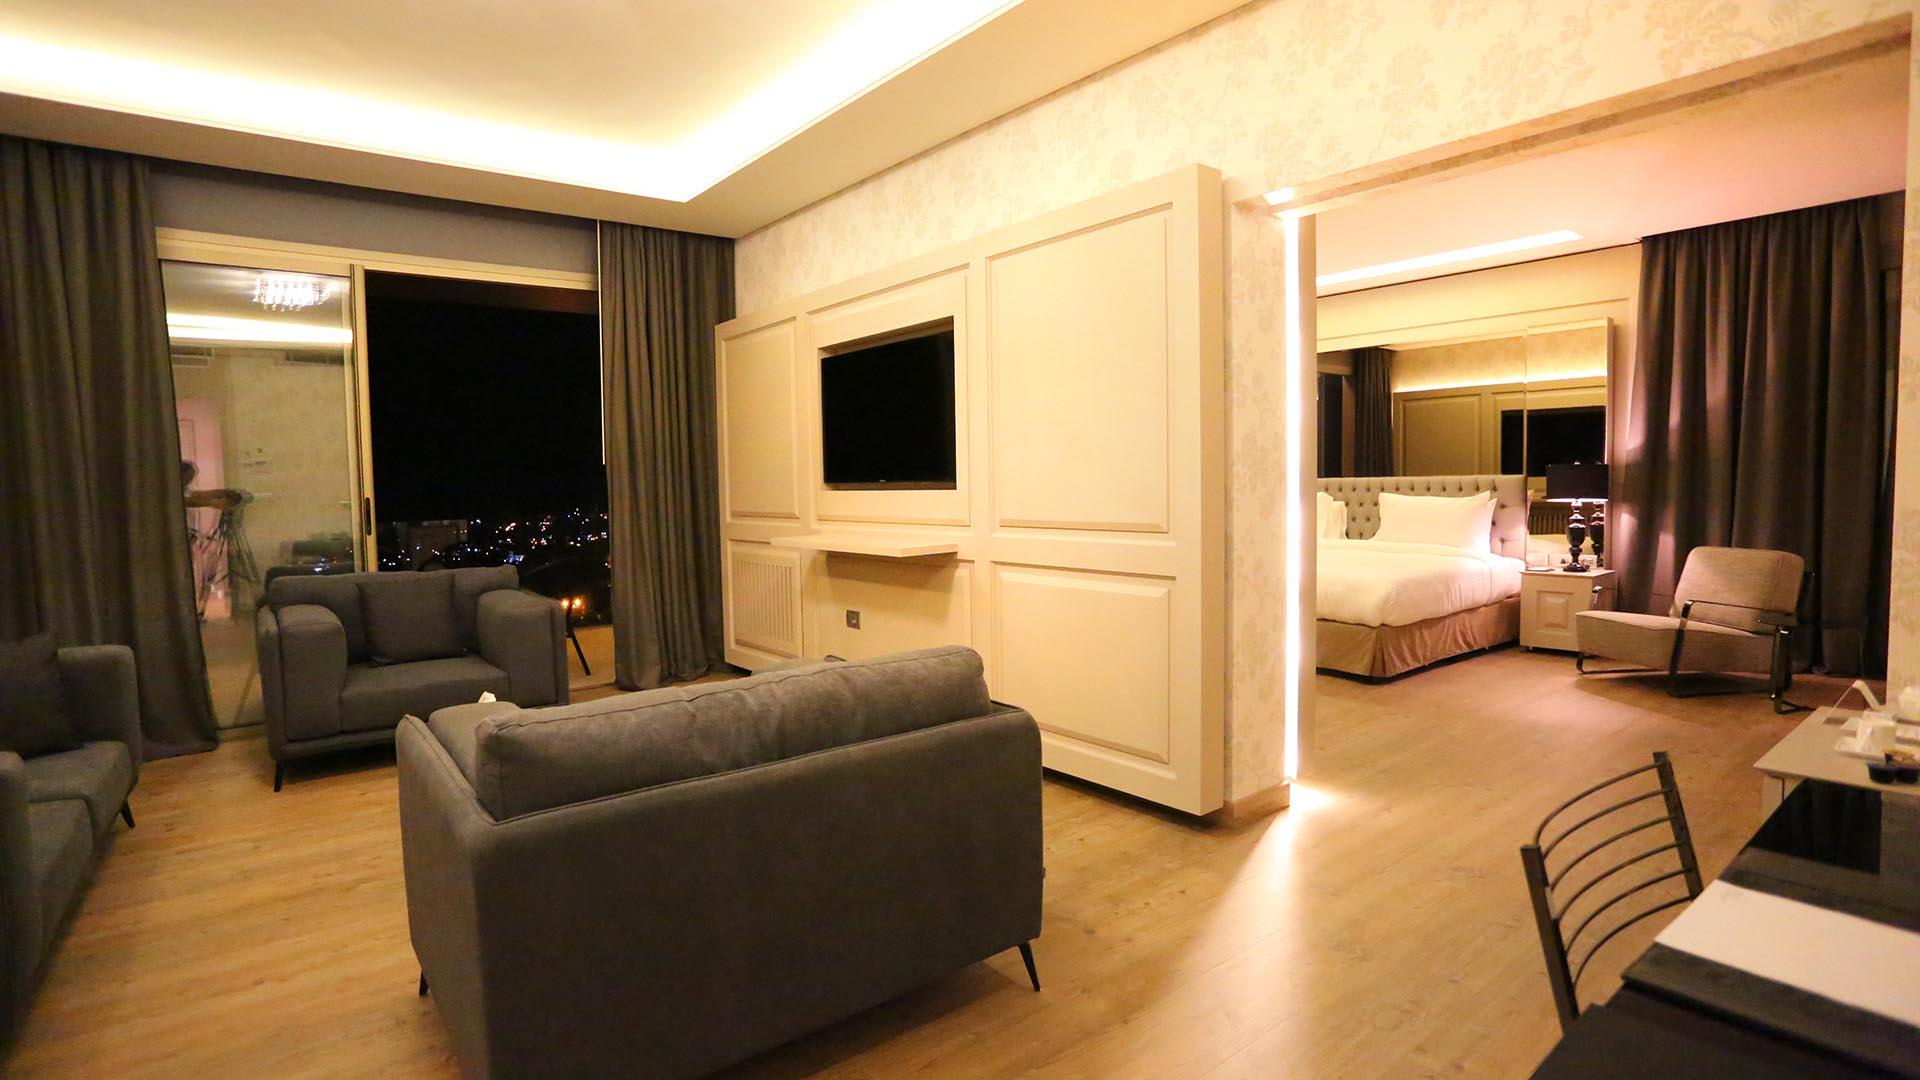 Executive Premium Suite at Mist Hotel & Spa